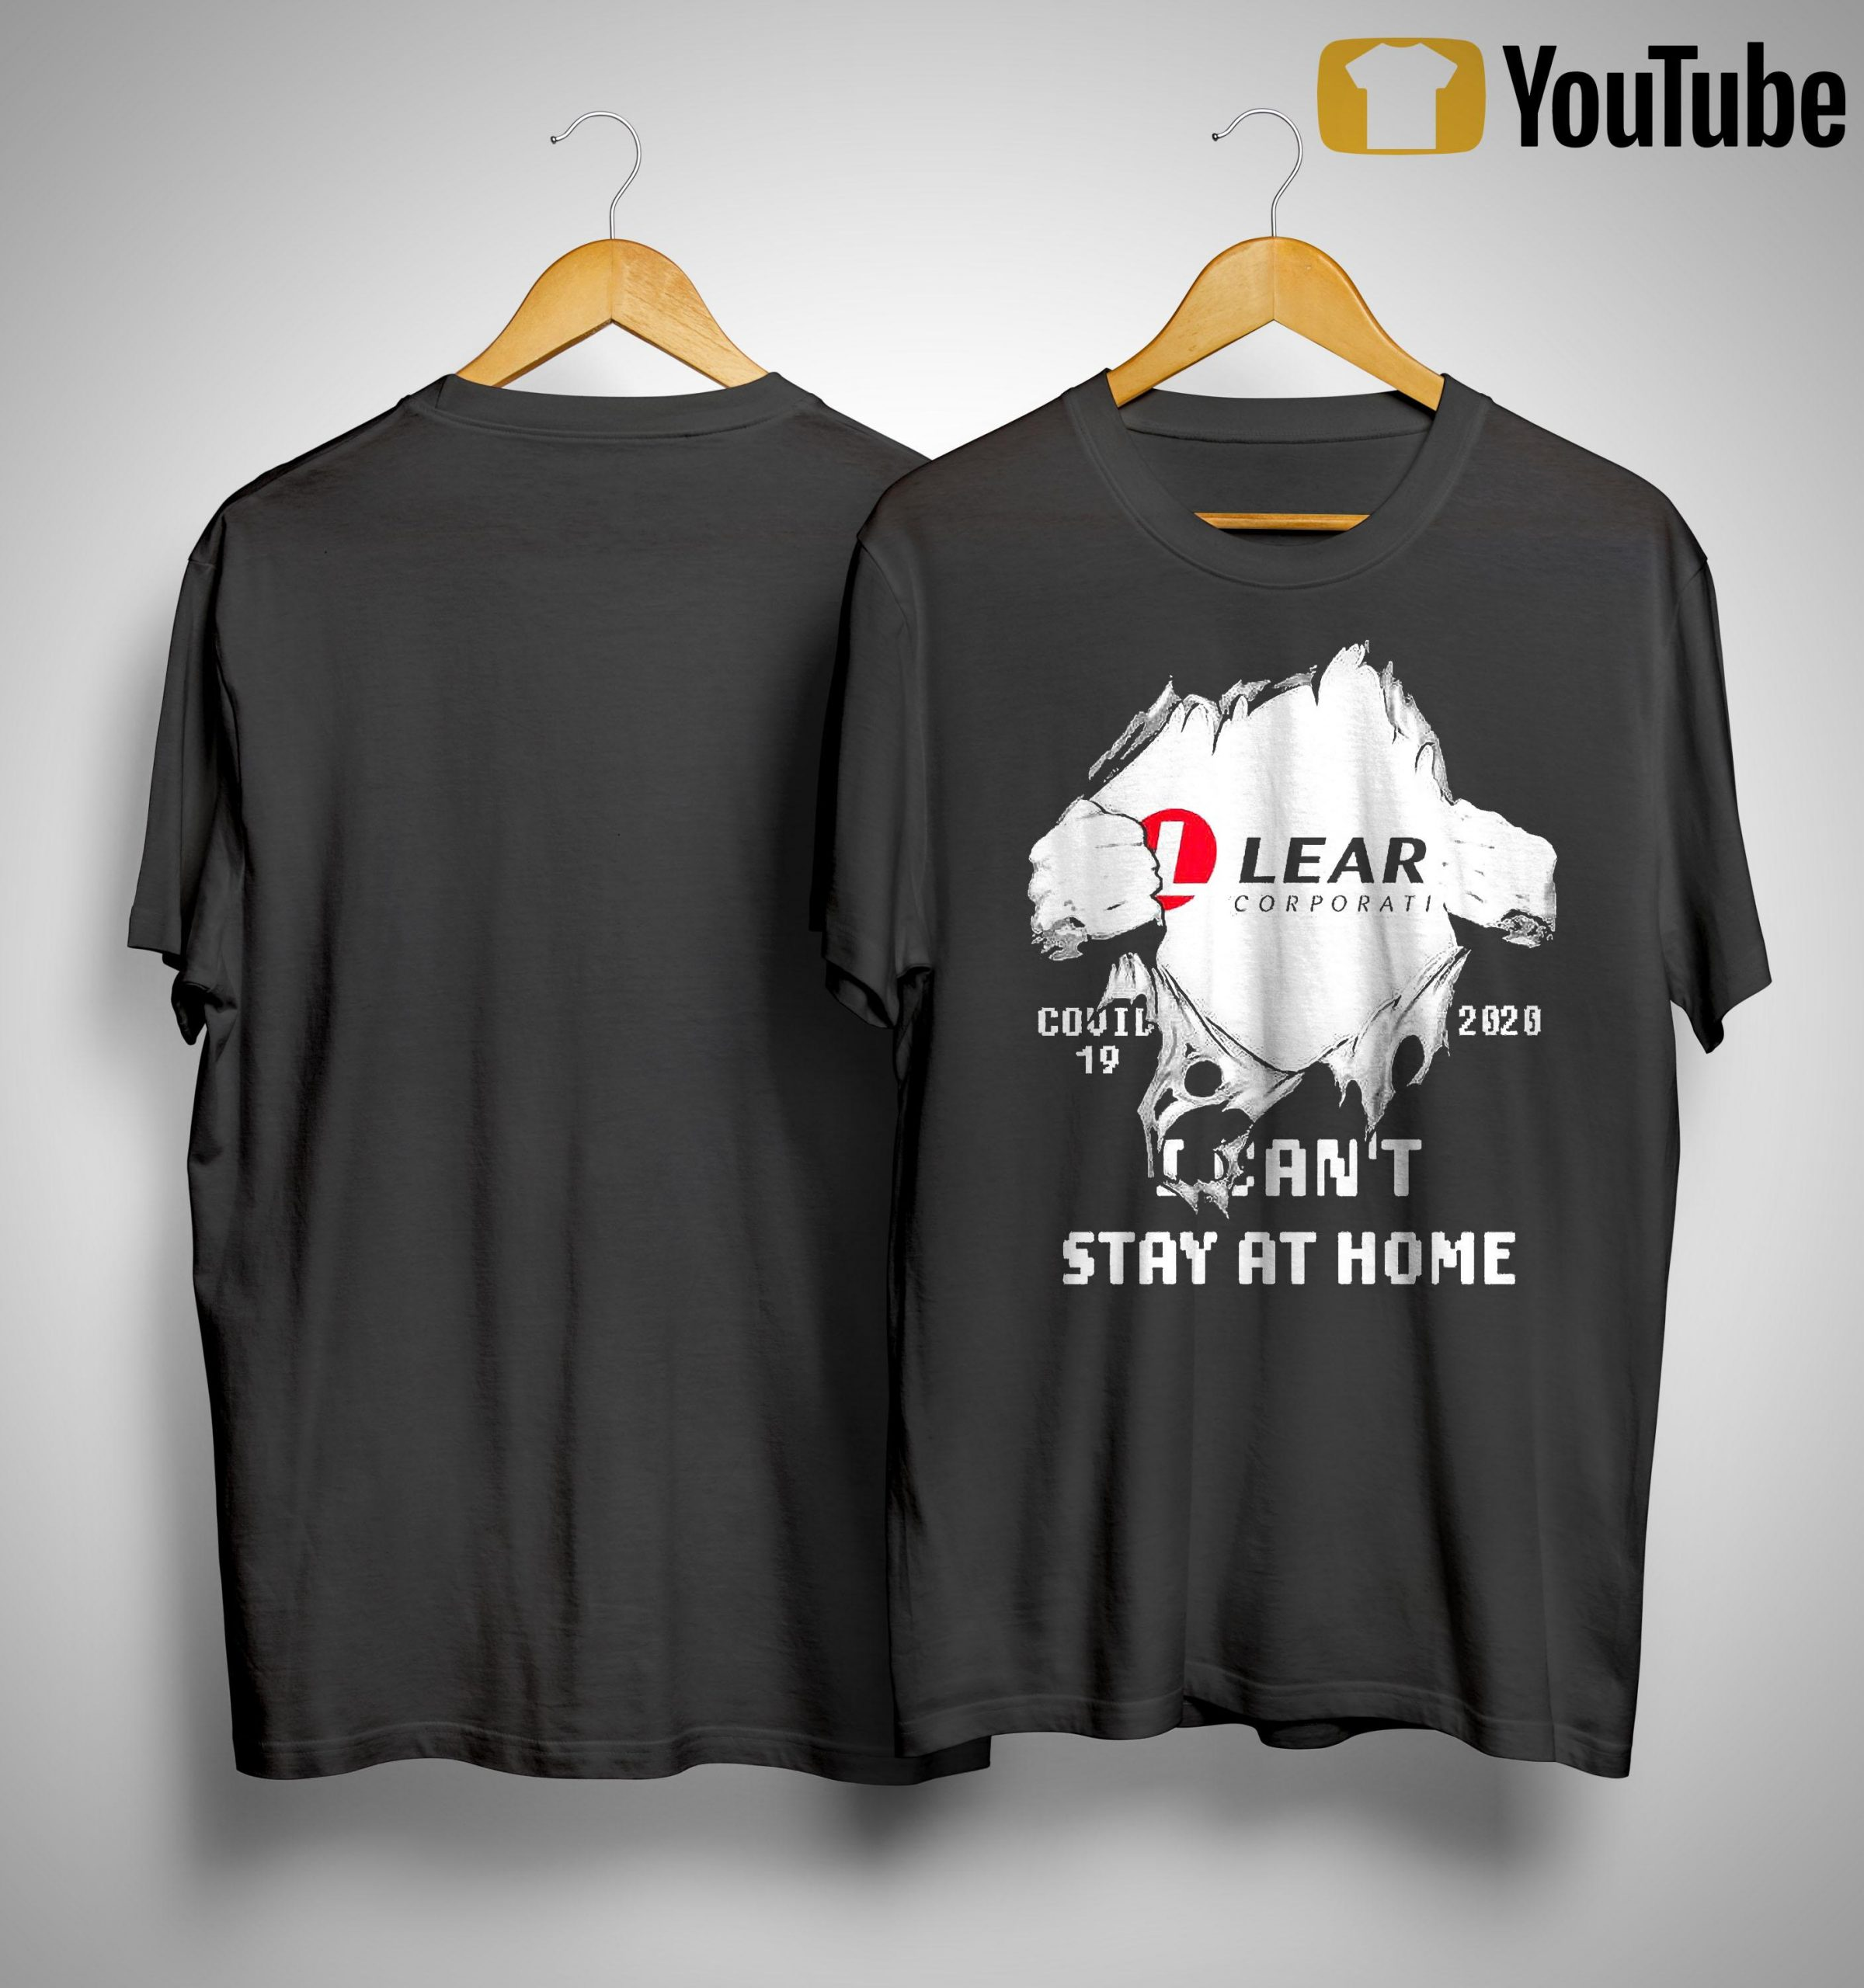 Inside Me Lear Corporation Covid 19 2020 I Can't Stay At Home Shirt